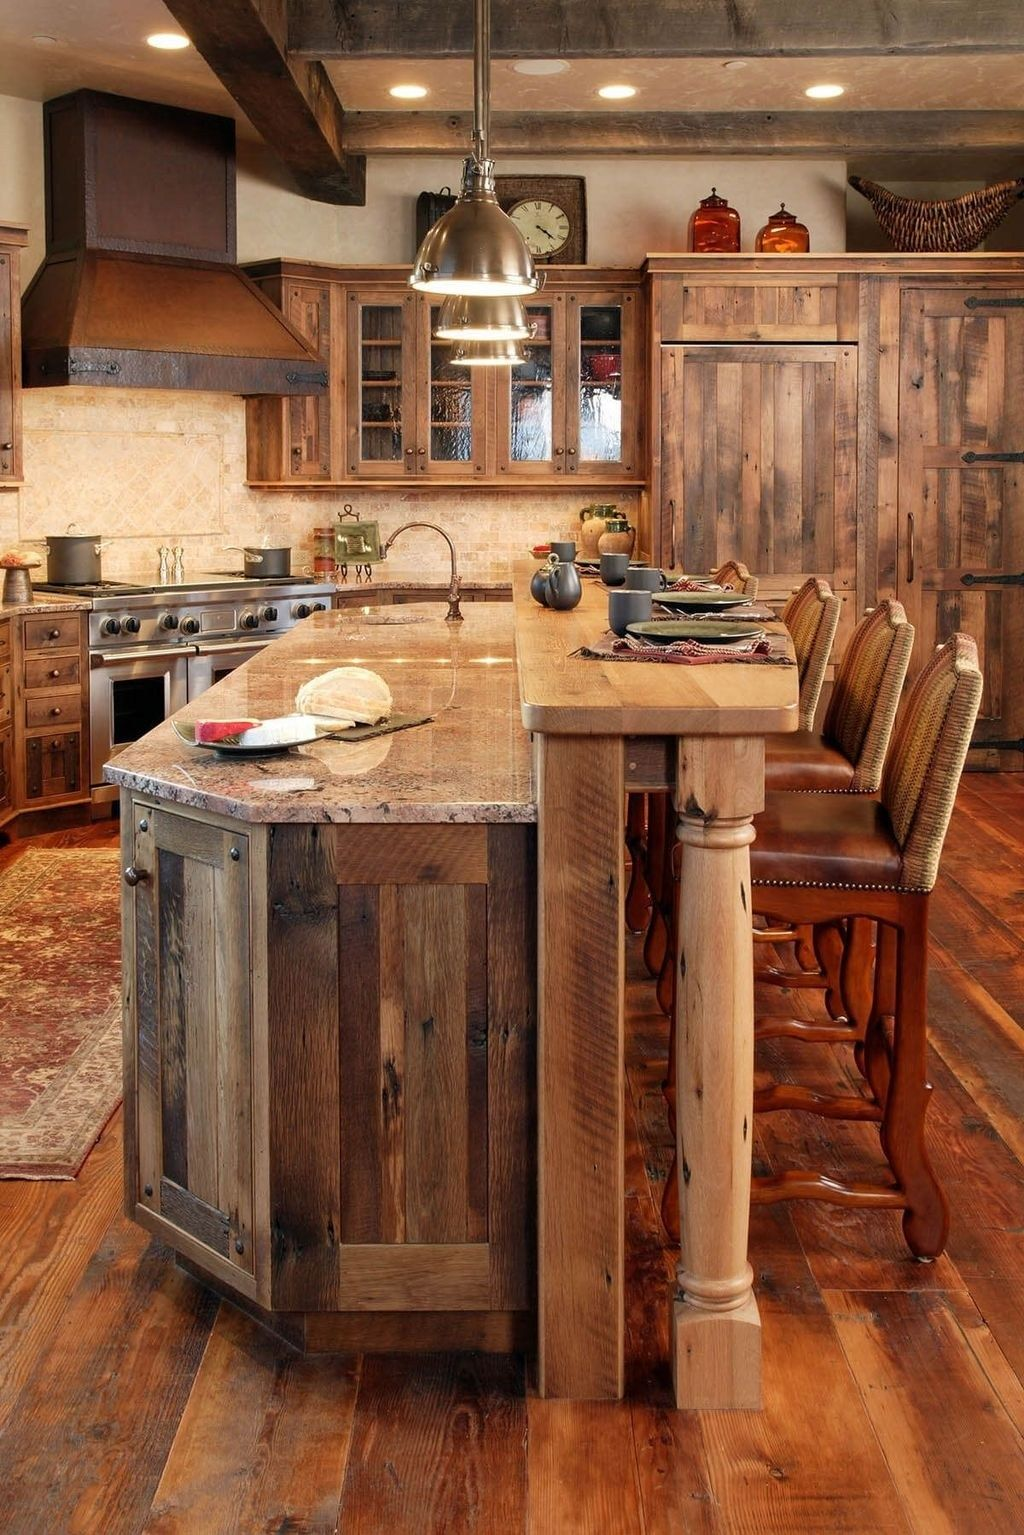 17 Fabulous Modern Home Bar Designs You Ll Want To Have In Your Home Right Away: 50 Popular Rustic Kitchen Cabinet Should You Love